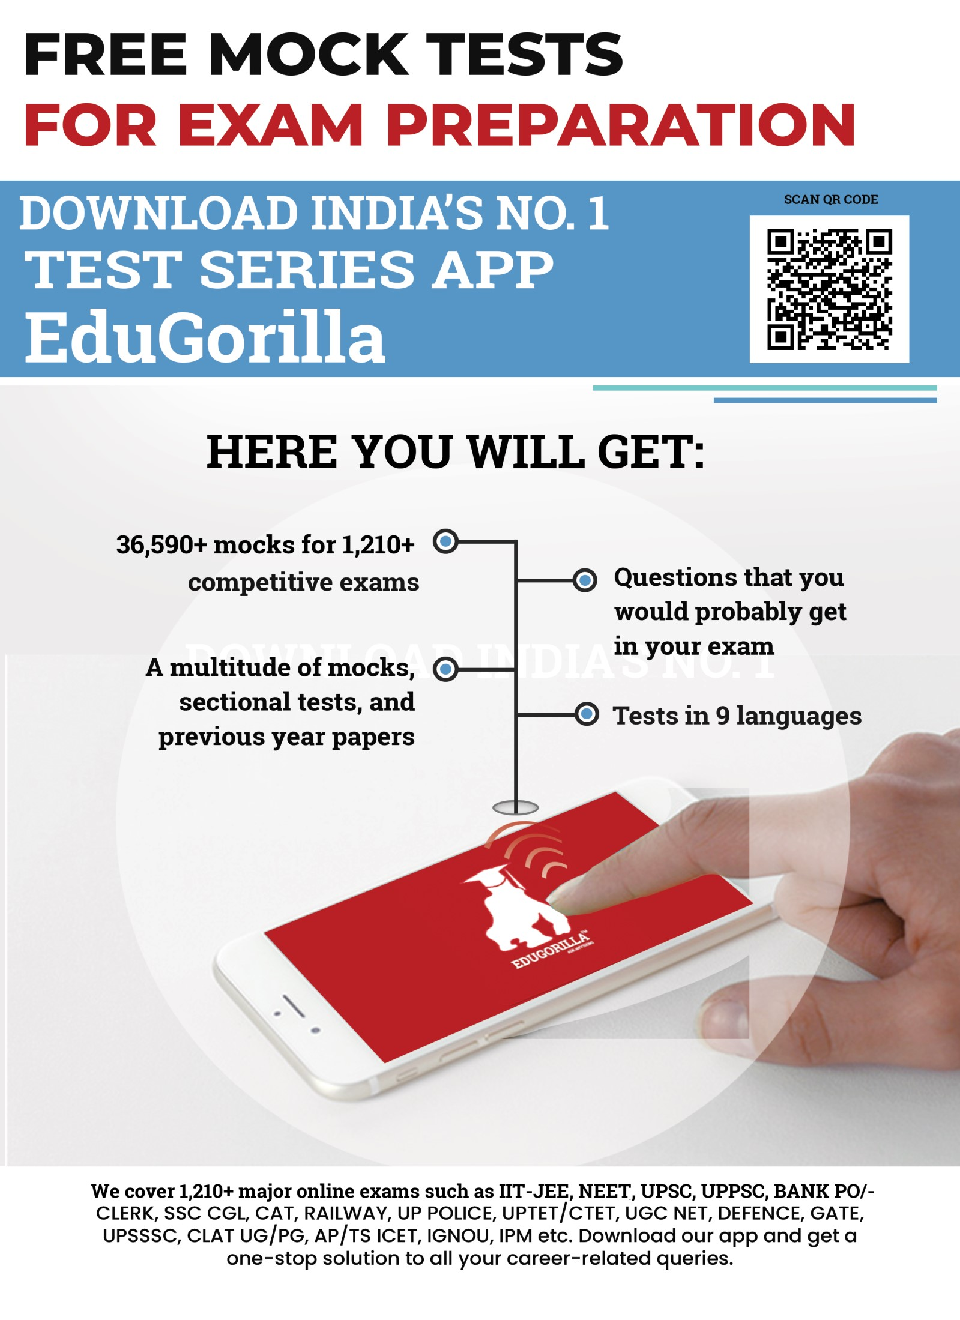 EduGorilla UCEED Entrance Exam 2020 | 10 Mock Test For Complete Preparation - Page 2